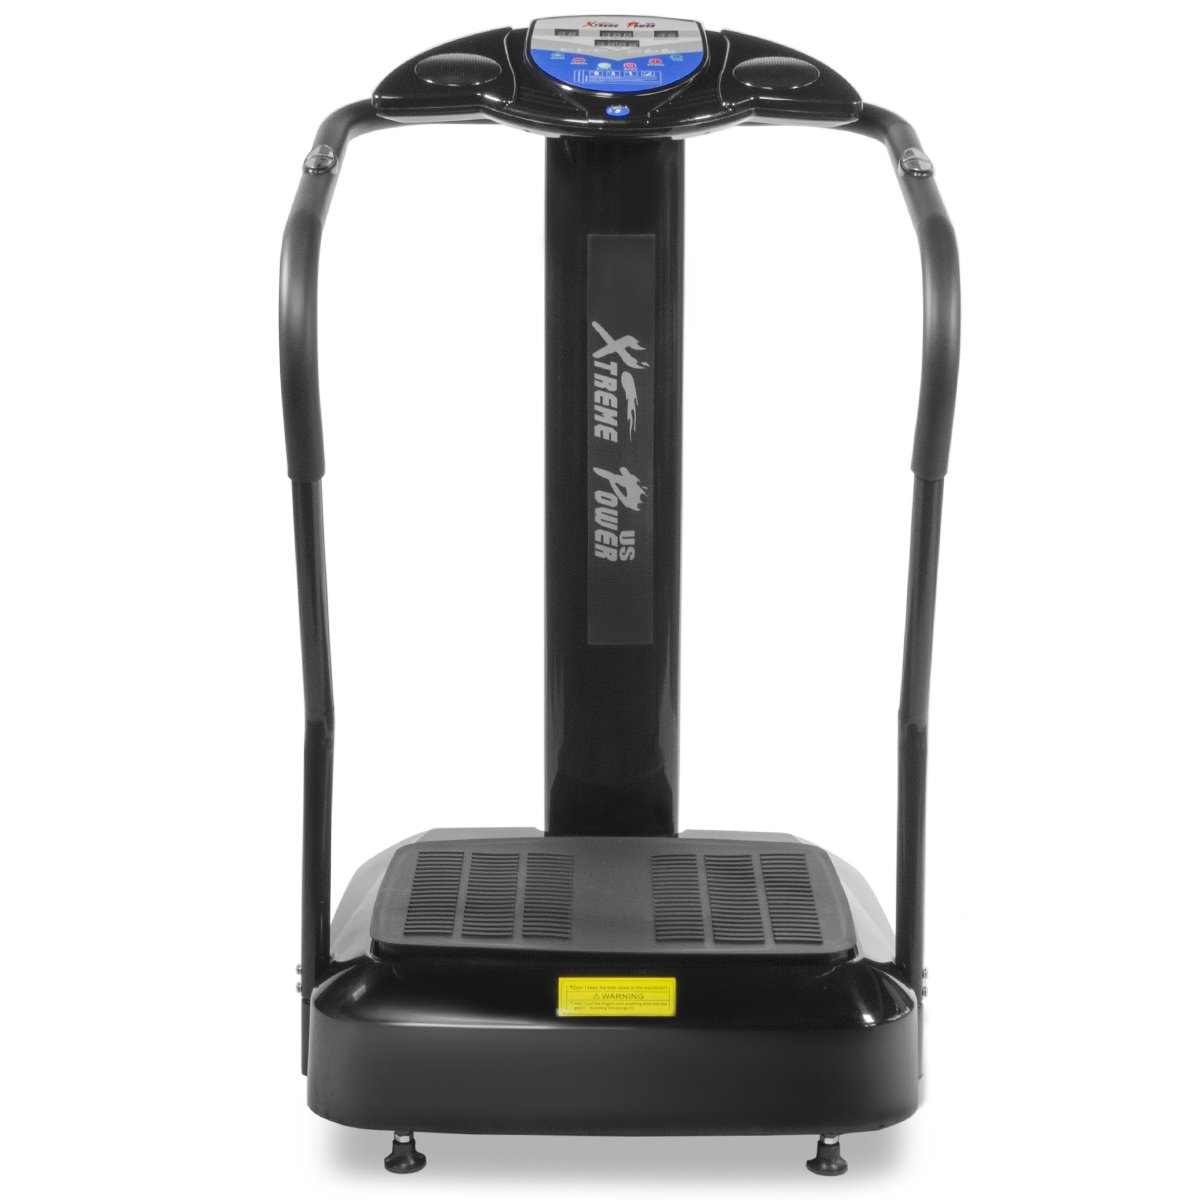 XtremepowerUS 2000W Slim Full Body Vibration Platform Exercise Crazy Fit Machine (Black) by XtremepowerUS (Image #1)